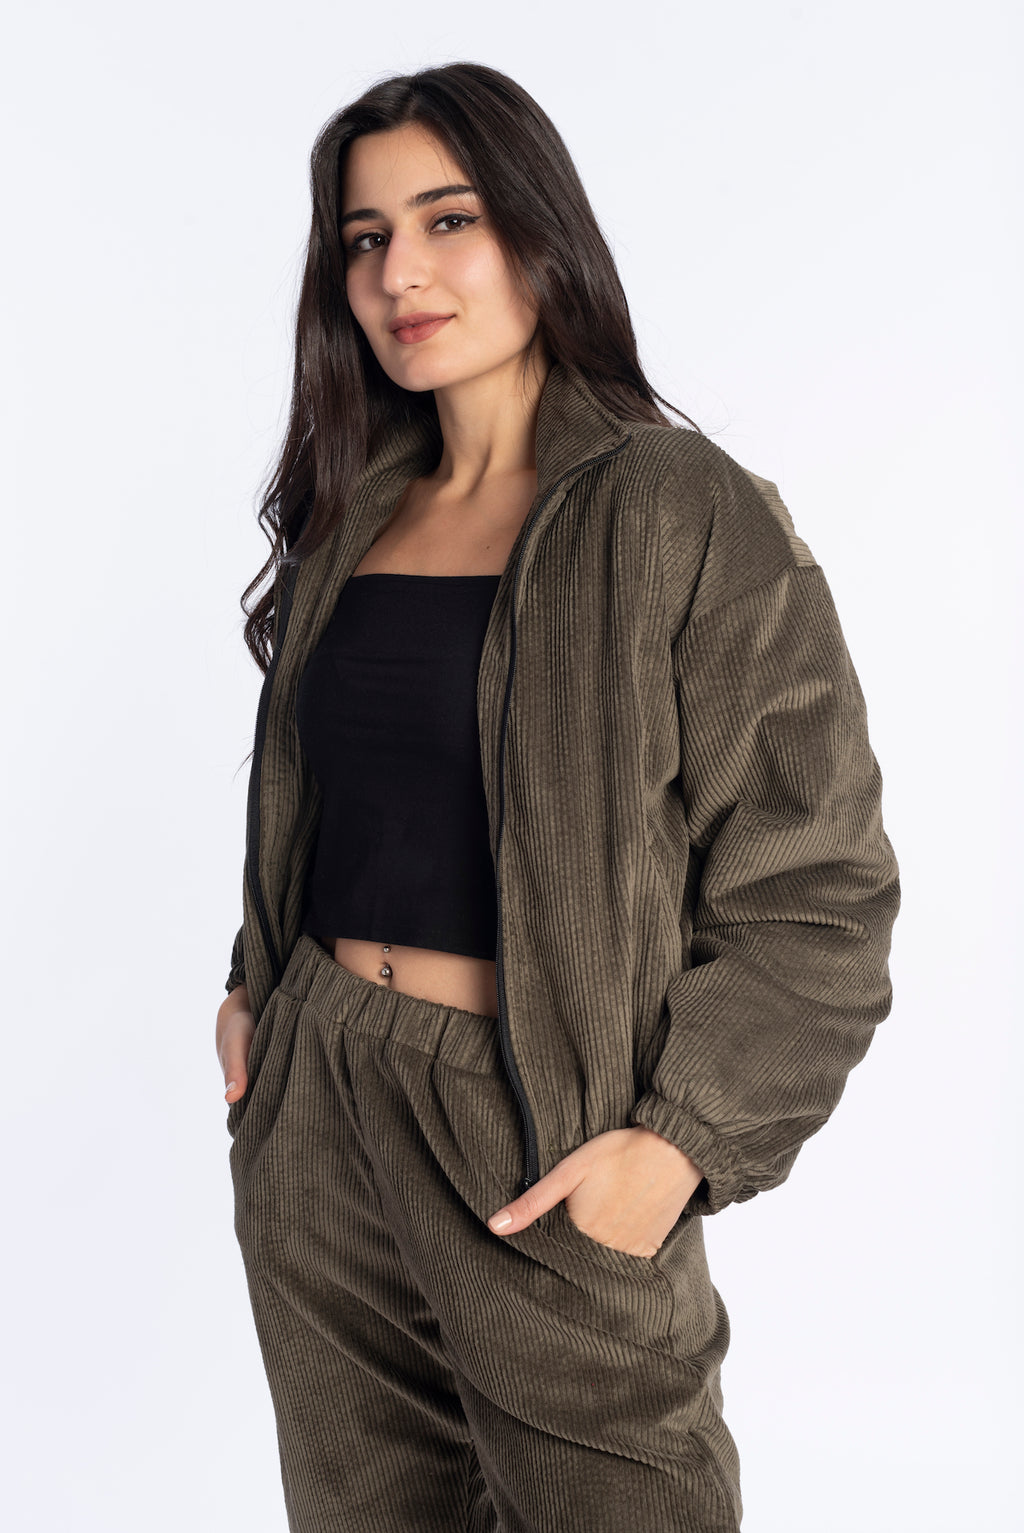 Velvet Bomber Jacket in Olive